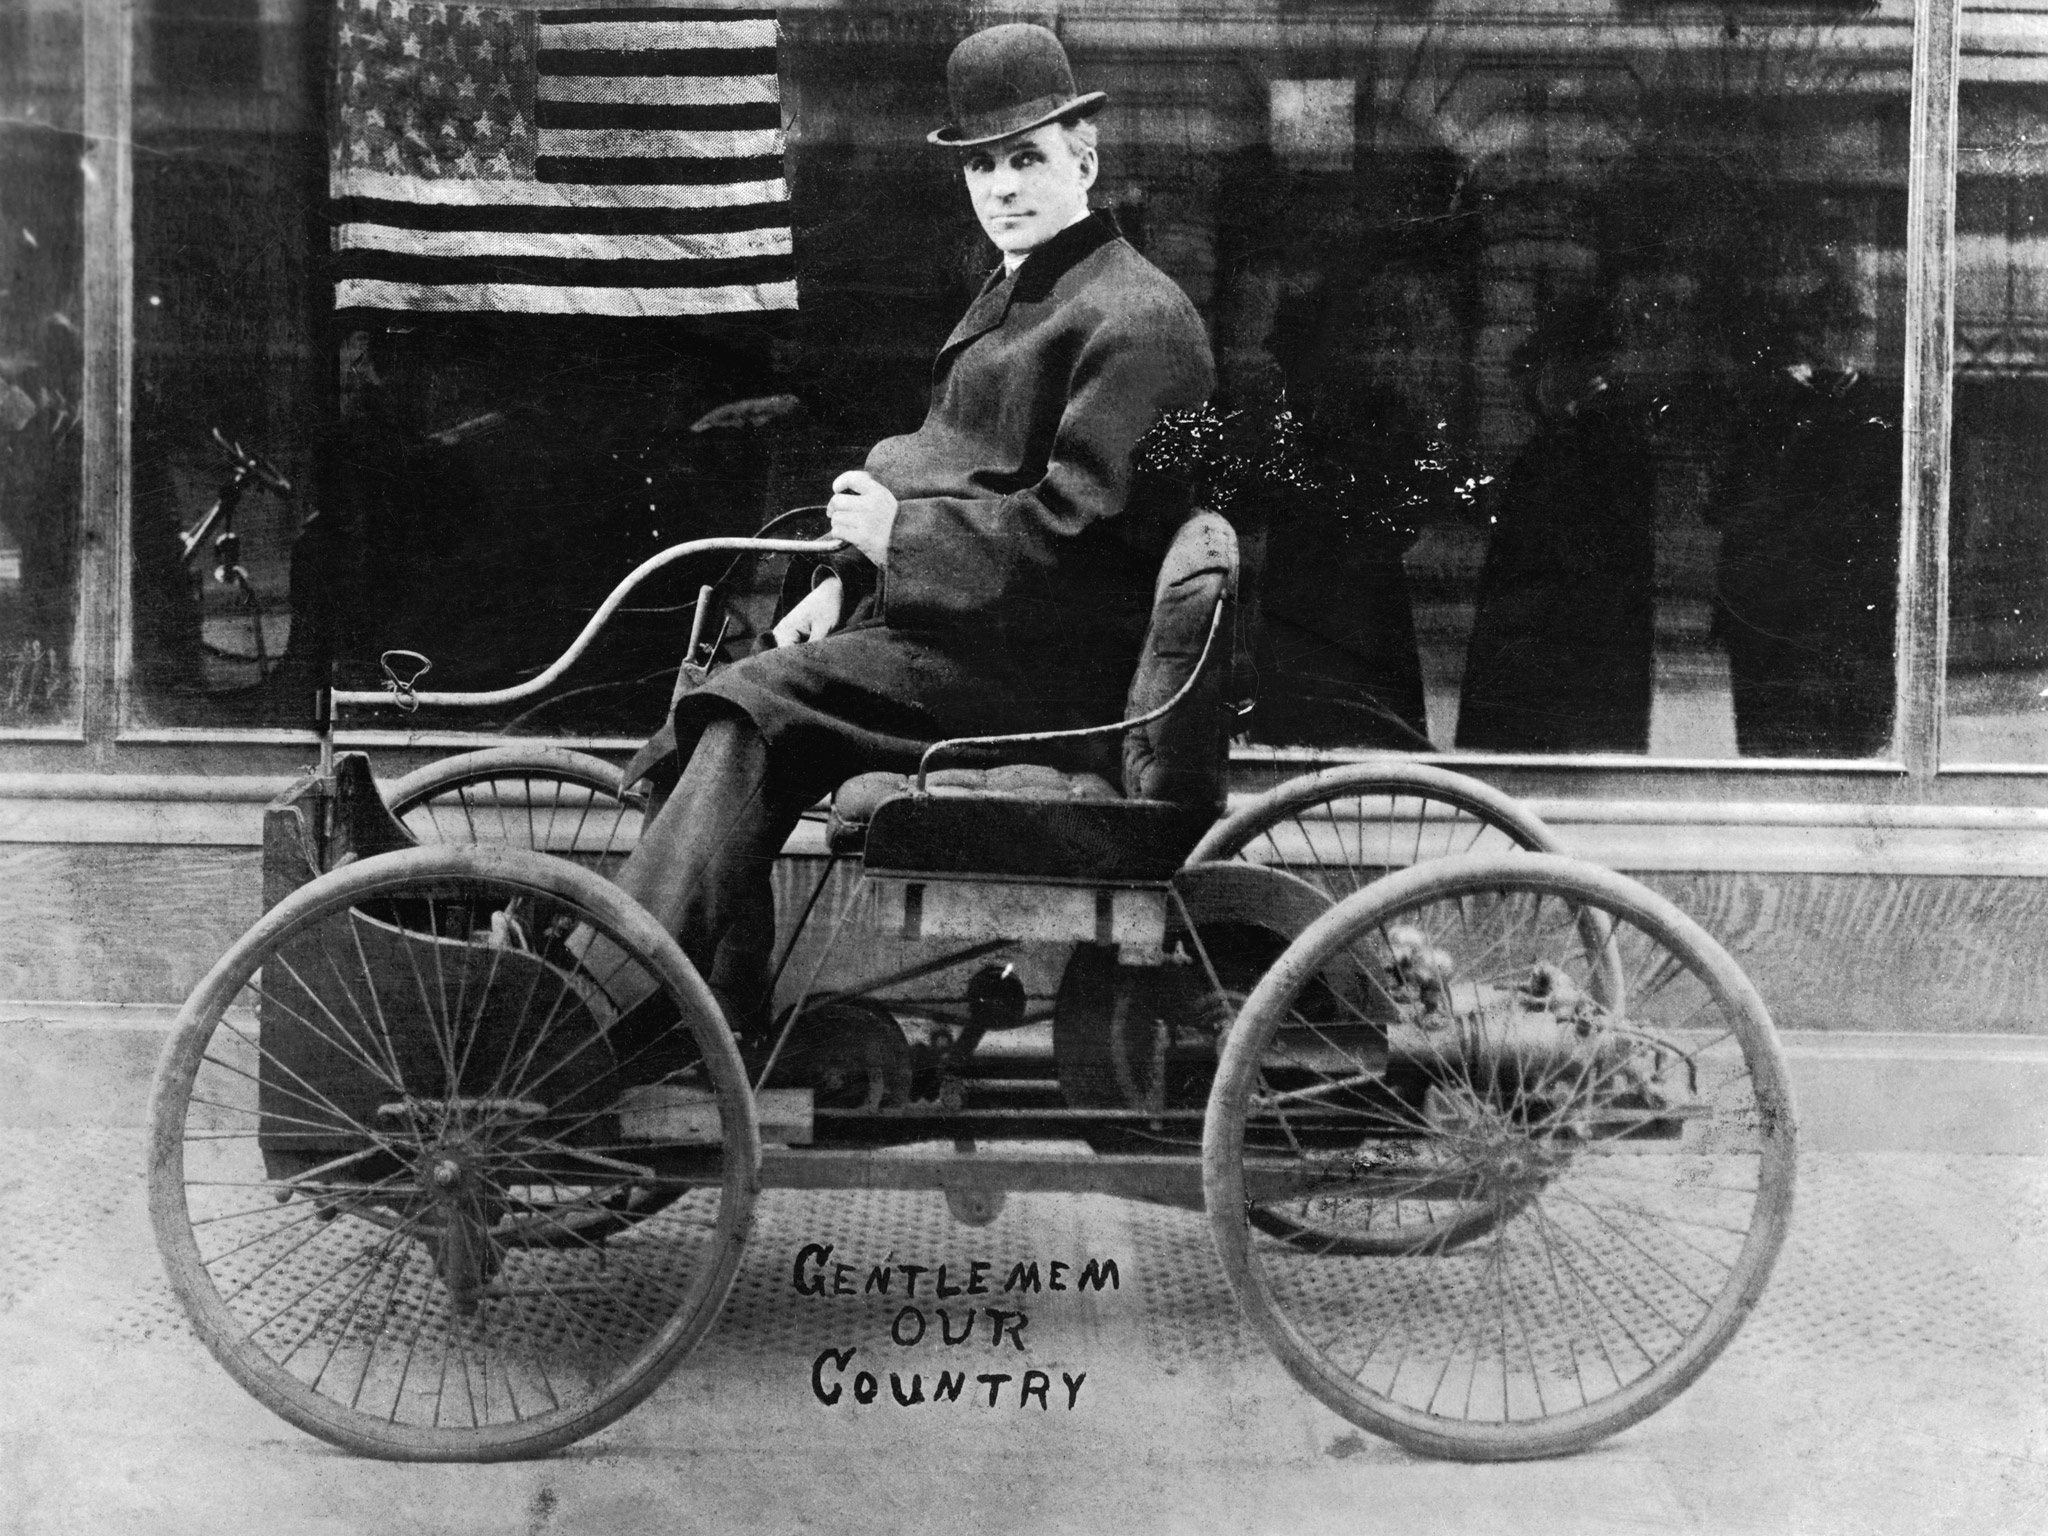 henry ford invented automobiles built 1896 automobile quotes past history american cars photograph 1863 ethanol 1947 early ever quadricycle auto